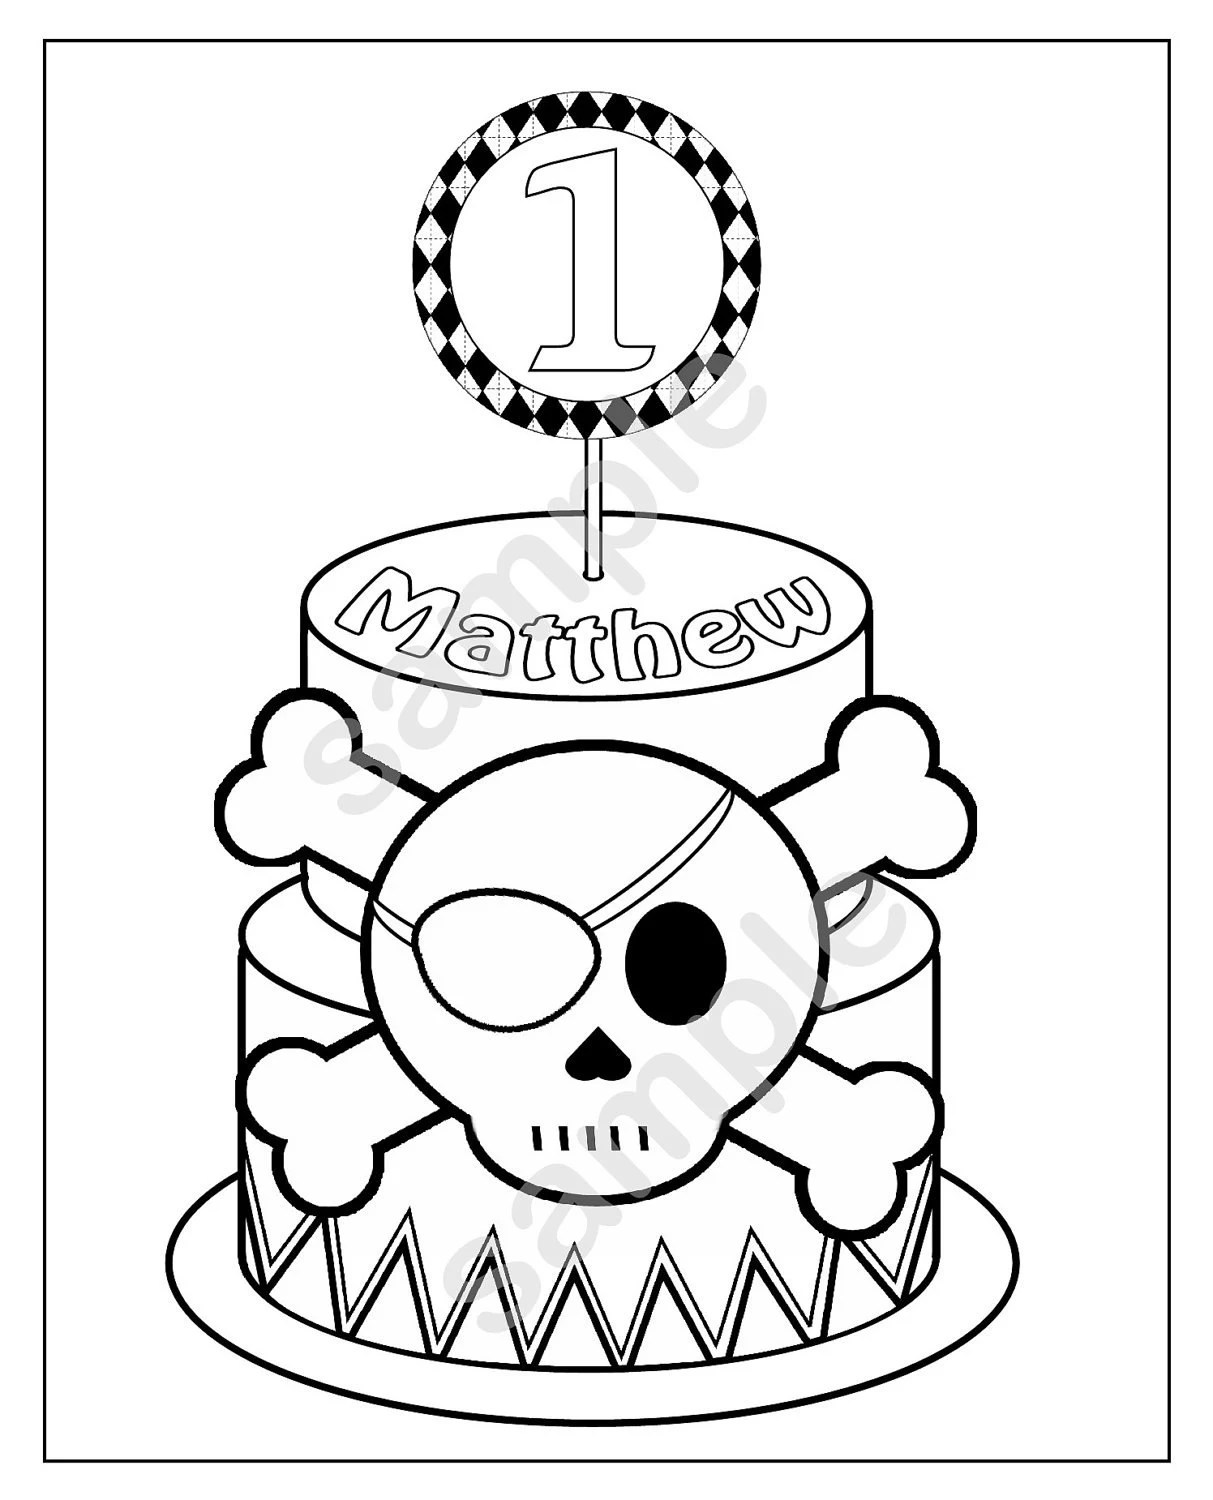 Personalized Printable Pirate Skull Crossbones Cake Birthday